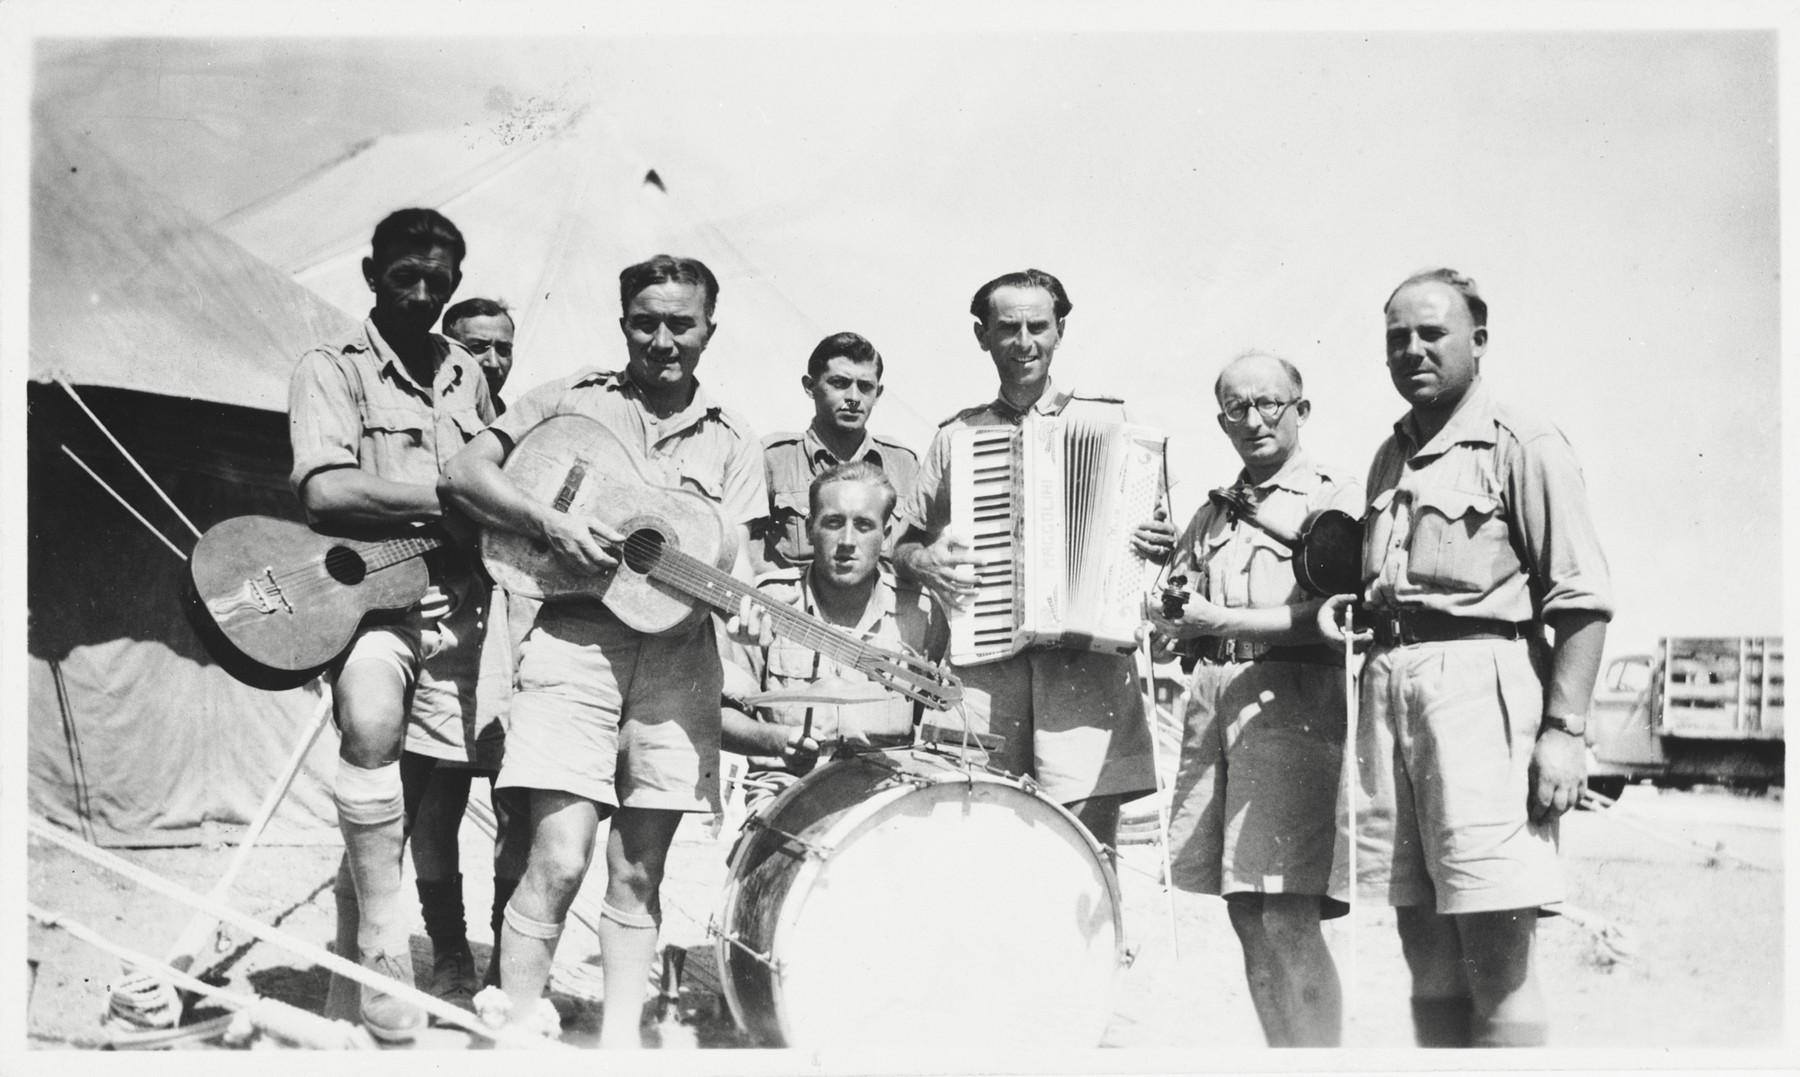 Group portrait of members of the 2nd Polish Corps (Anders Army) band while they were stationed in Palestine.  Markus Rosenzweig is pictured playing the accordian.